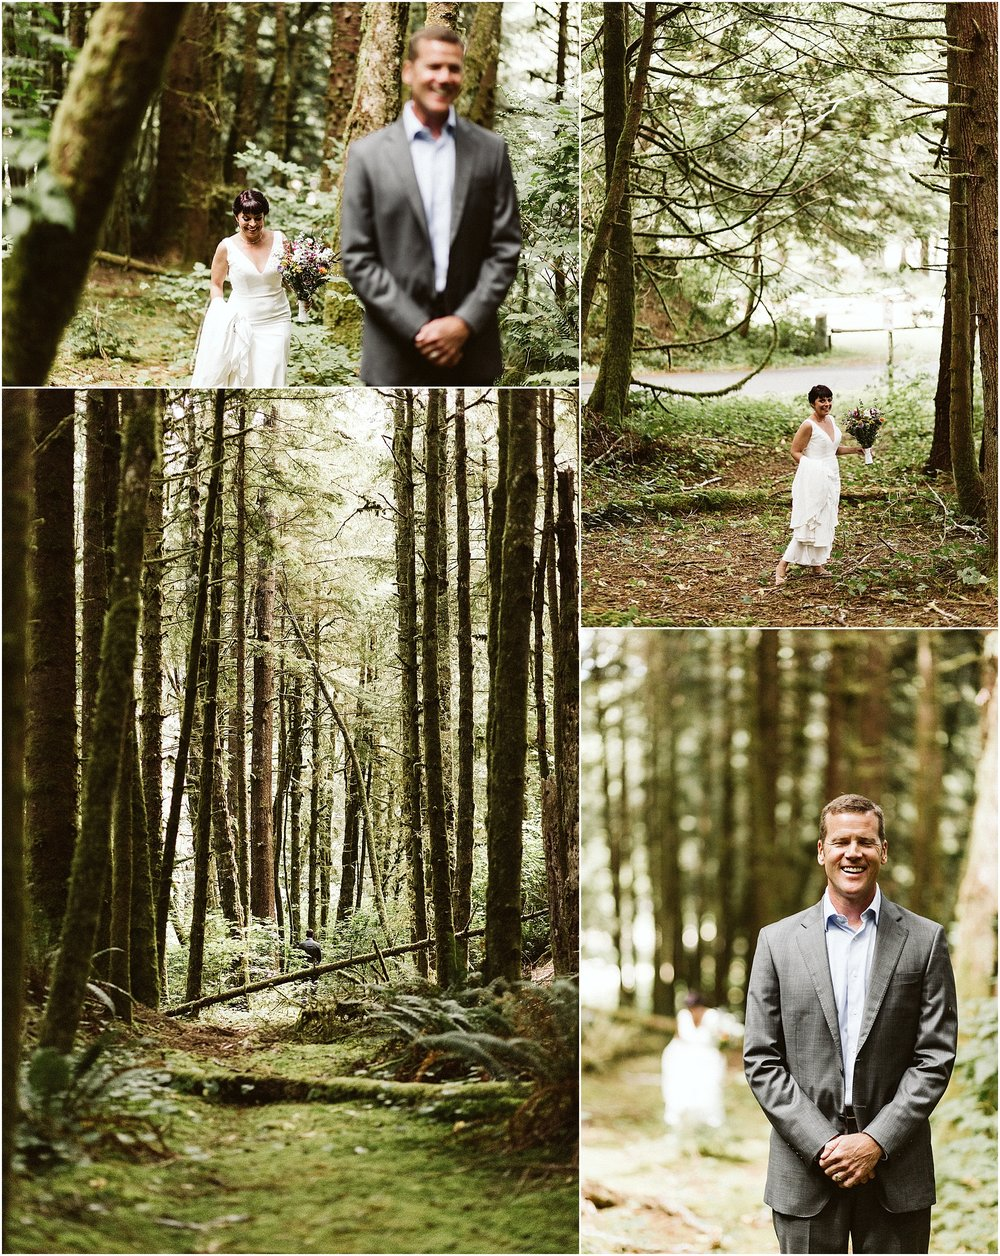 Oregon Coast Intimate Wedding | oregon elopement photographer | oregon elopement2.jpg